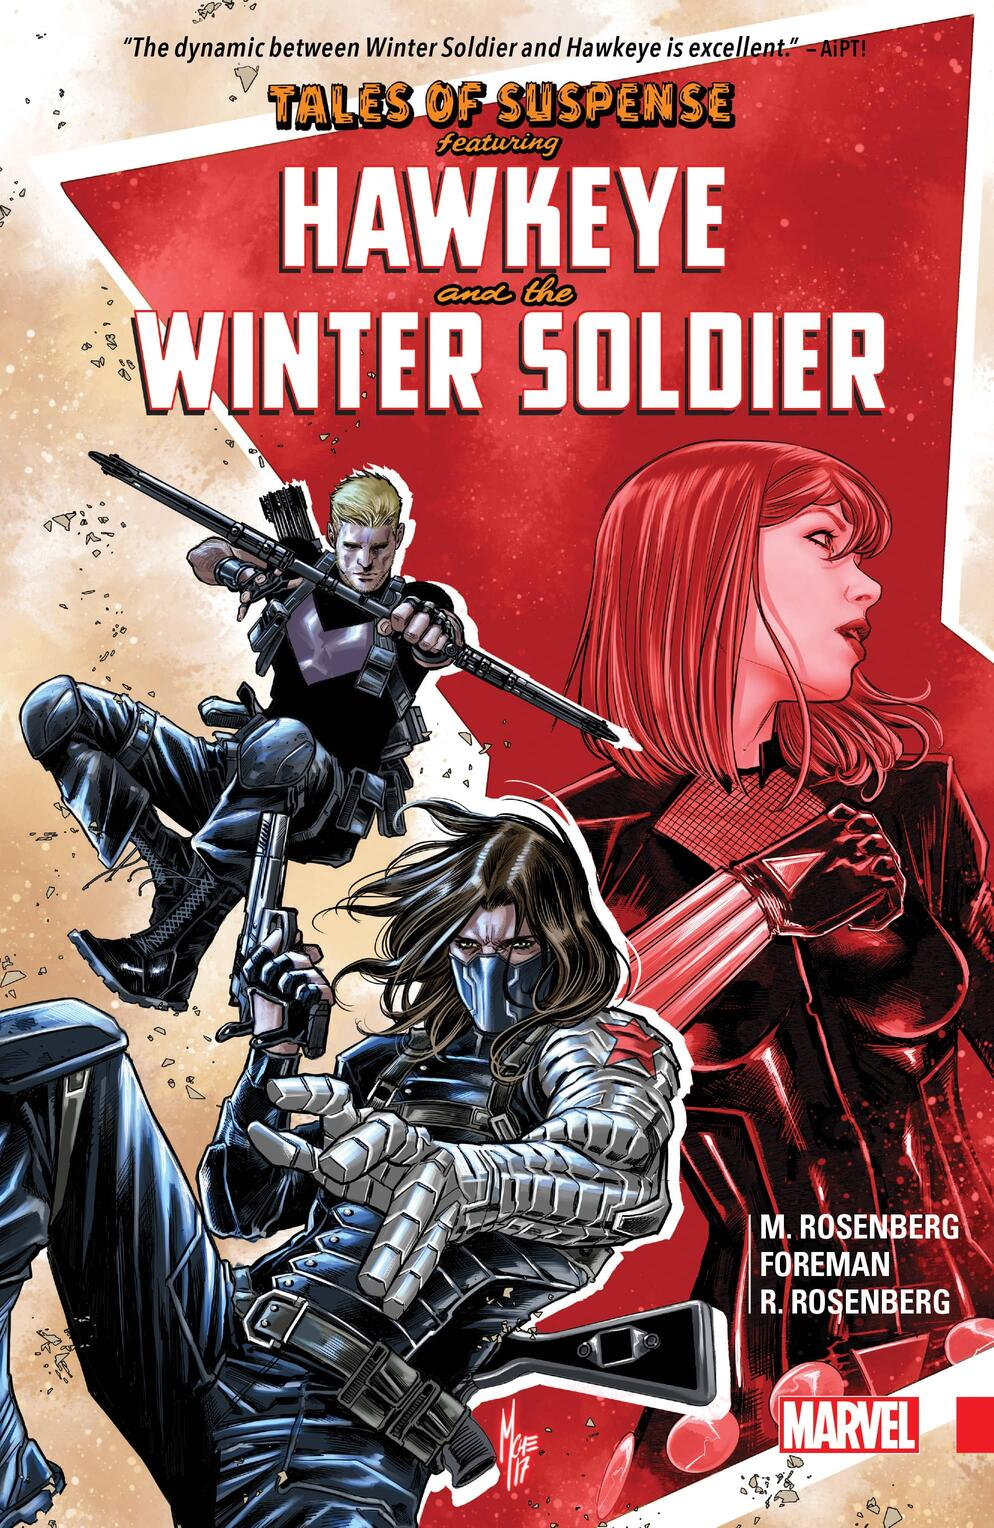 Cover to  Tales of Suspense: Hawkeye & The Winter Soldier.